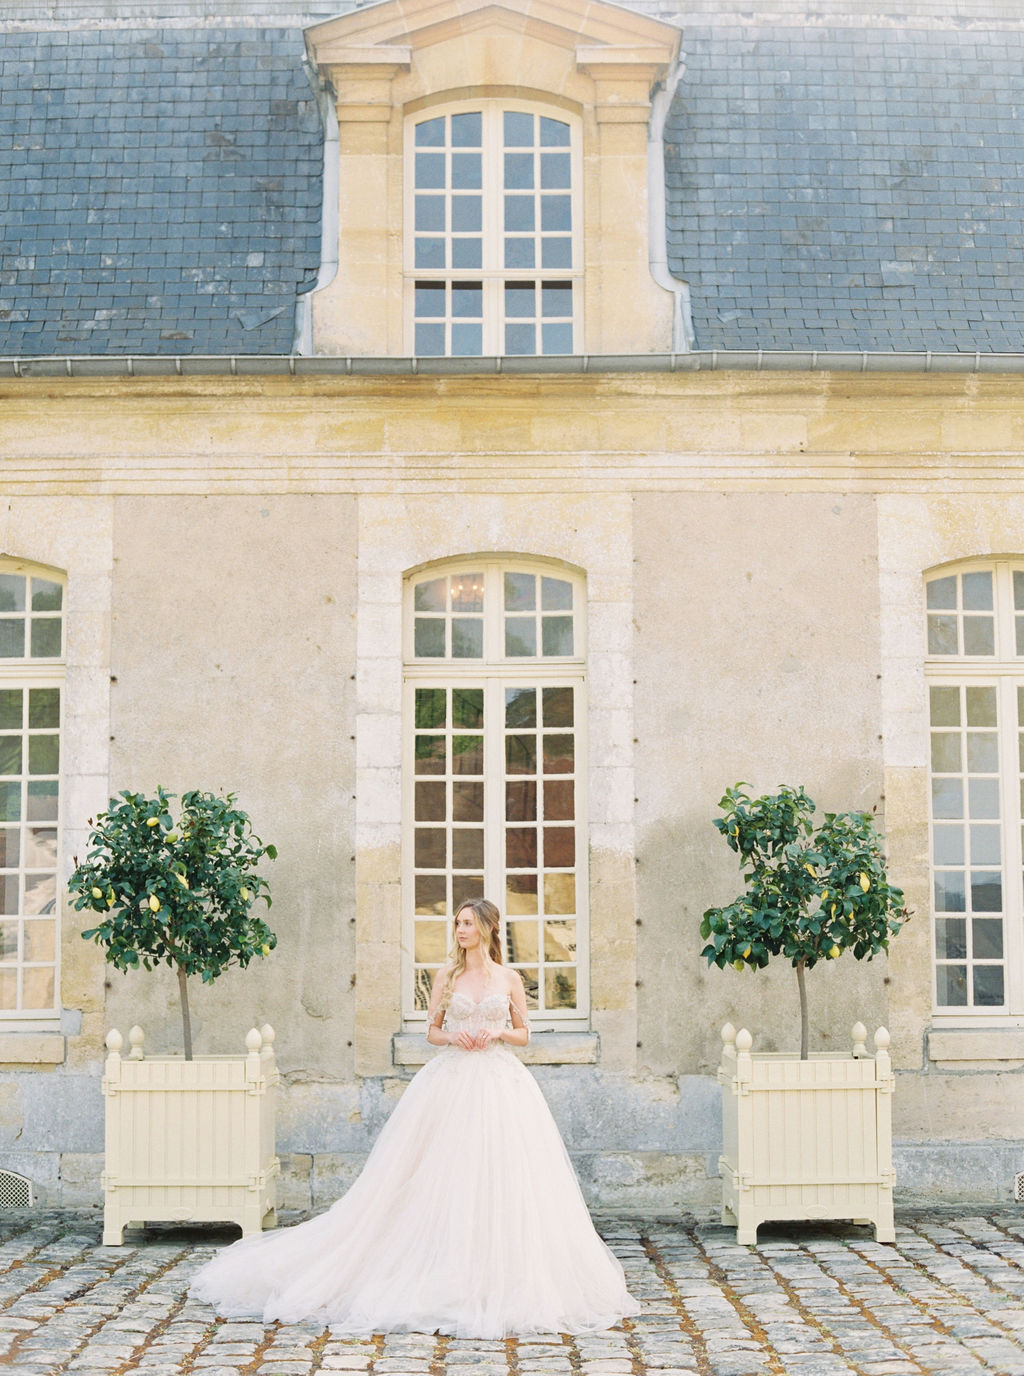 travellur_photoshoot__elegance_Jardin_de_Chateau_de_Villette_exterior_bride_wedding_shoot.jpg